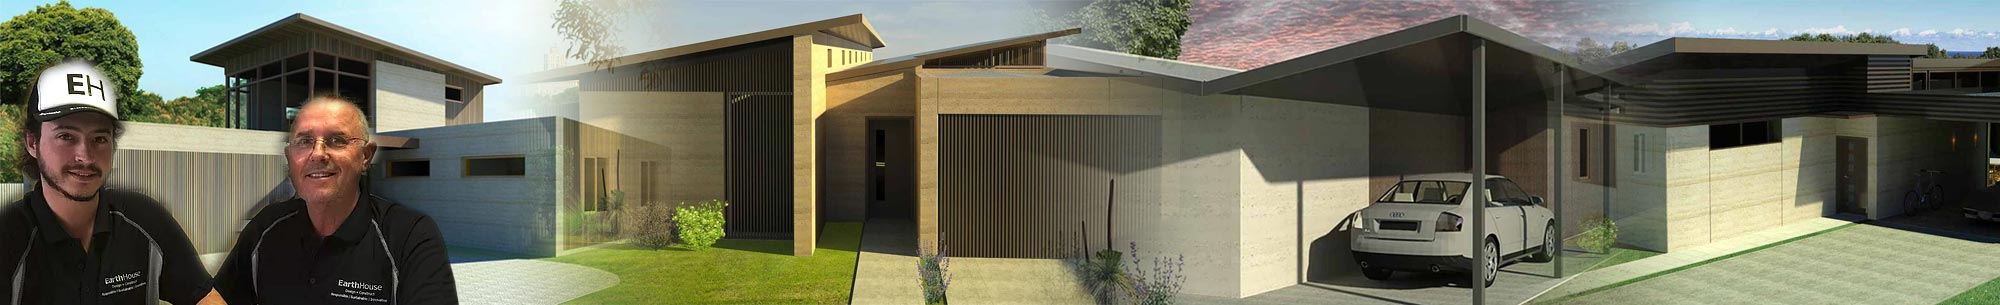 Find out more aboutEarth House and the team that designs and builds rammed earth houses and homes in Melbourne and the Mornington Peninsula